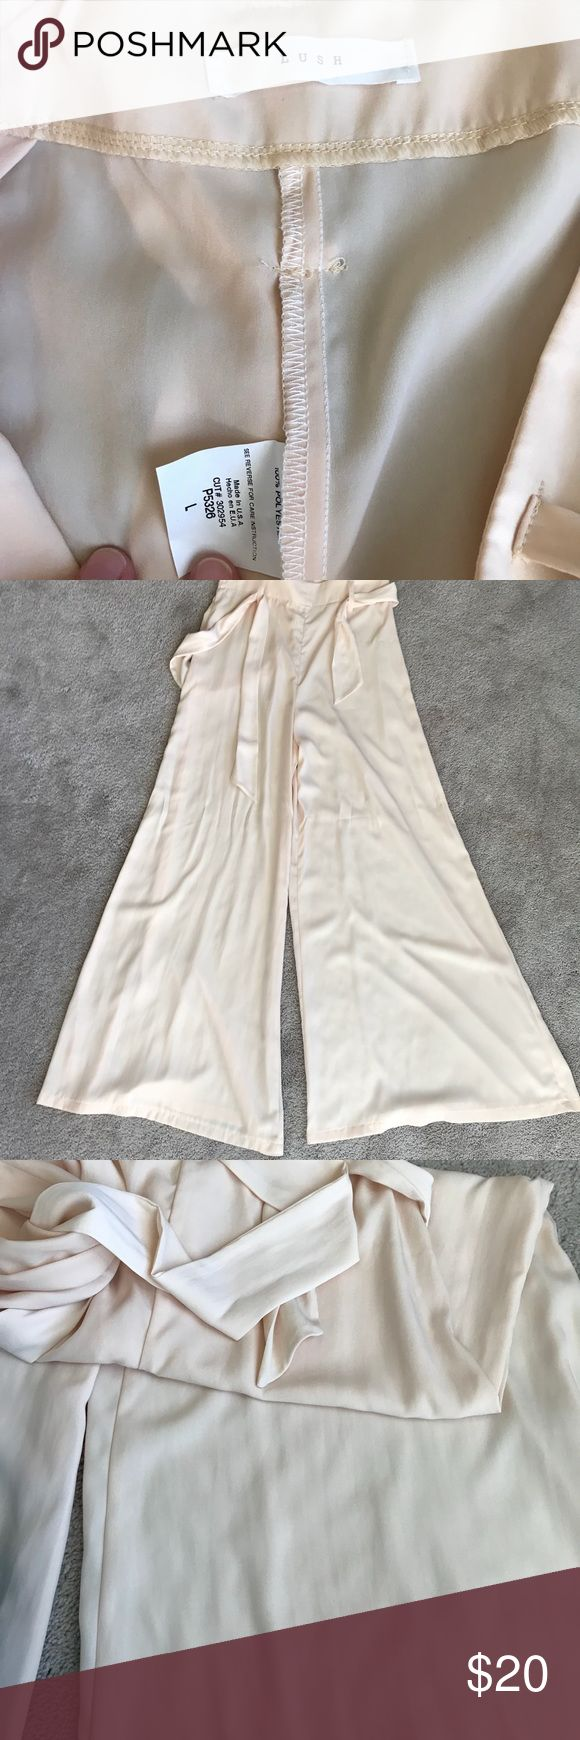 Lush Large Cream White Colored Pants (Nordstrom) These cream colored Lush brand pants are ready for you! This brand can be found at Nordstrom, a very nice department store. Bundle for savings on shipping and discounted prices on items. Thank you so much! Lush Pants